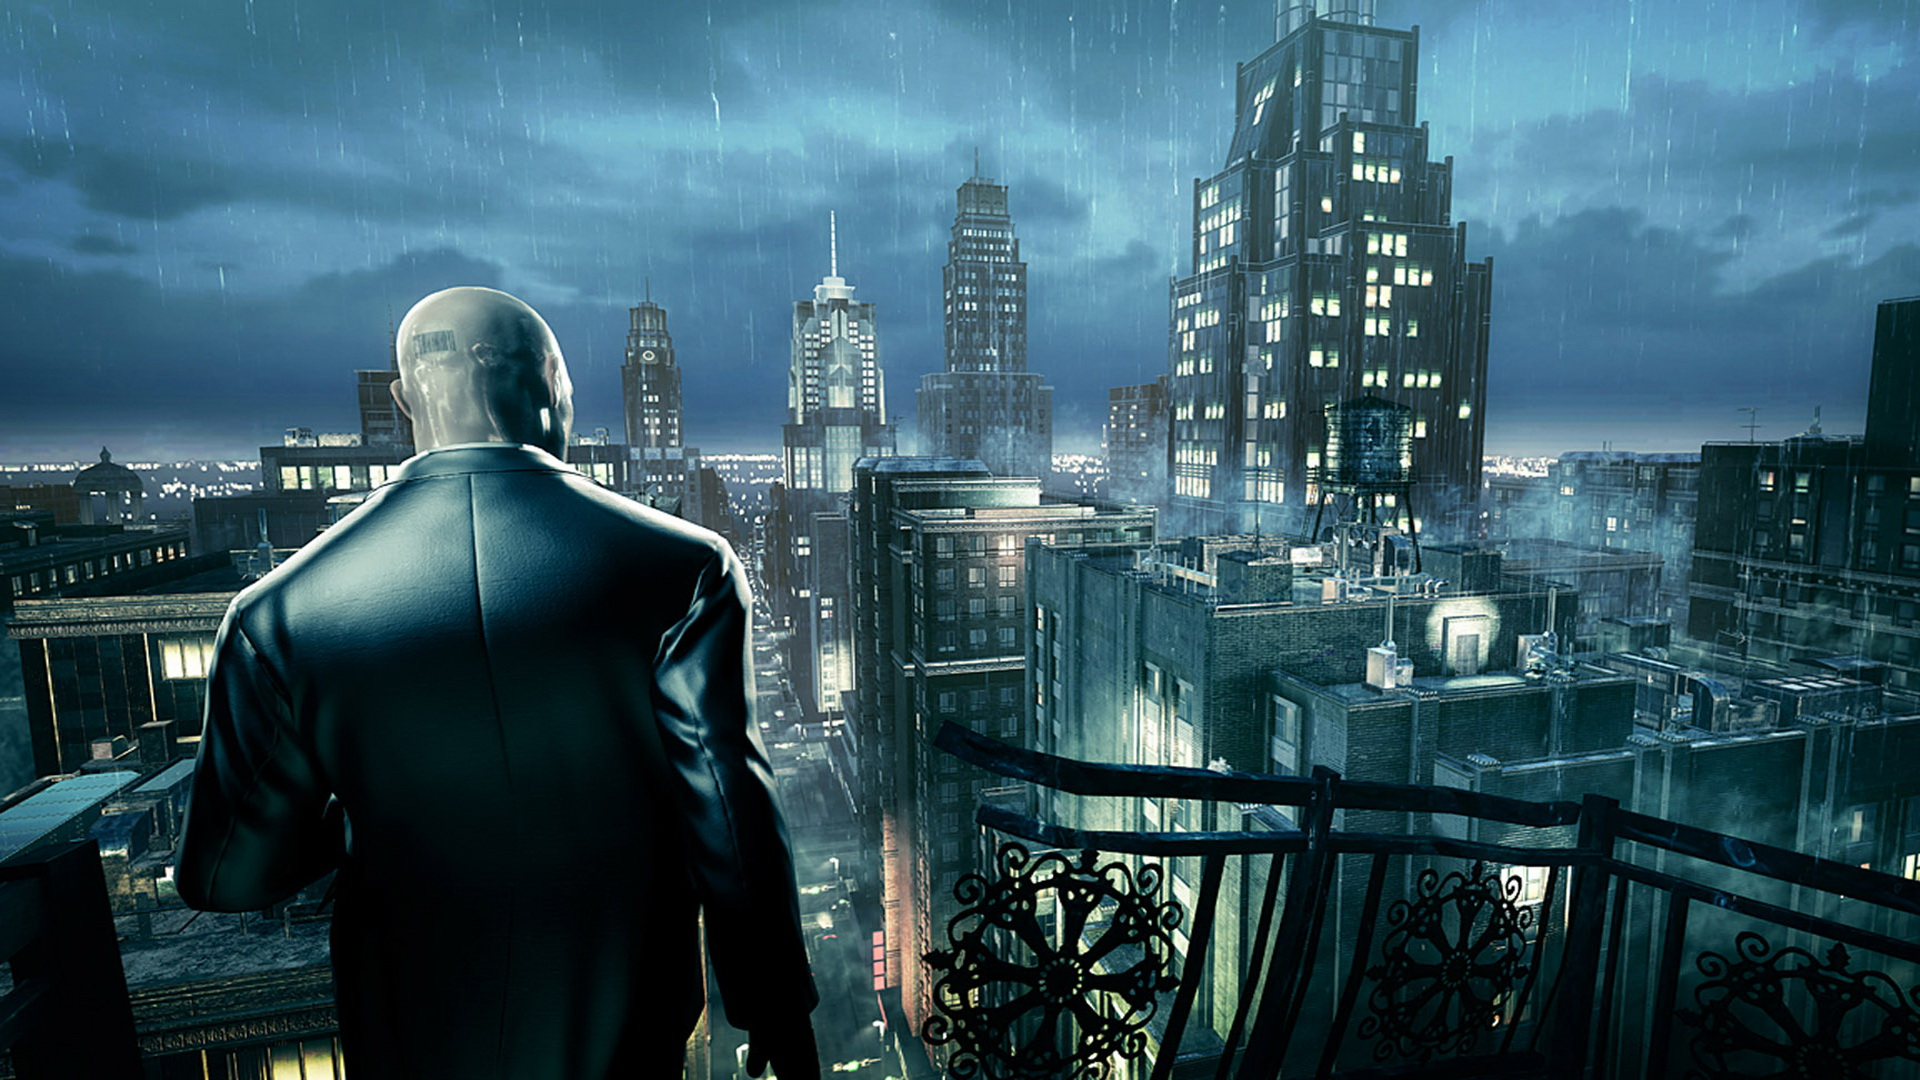 hitman absolution 07 Wallpaper PC Game Wallpapers Game HD Wallpapers 1920x1080